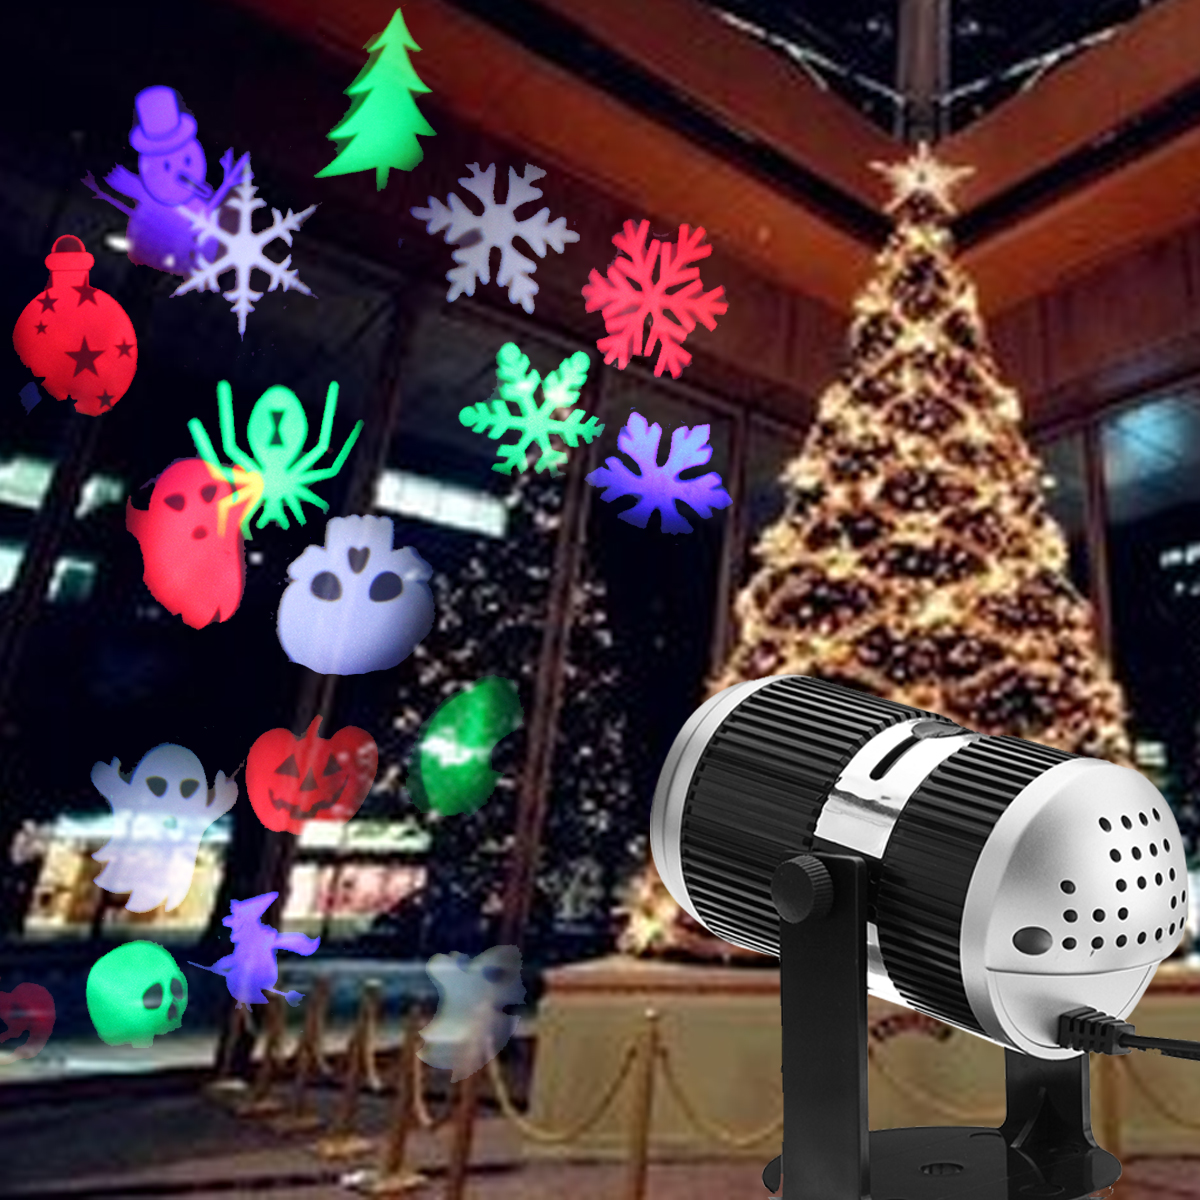 4W RGB LED Projector Stage Light for Garden Wall Halloween Christmas Party Decor with 4 Gobo Cards EU US Plug цены